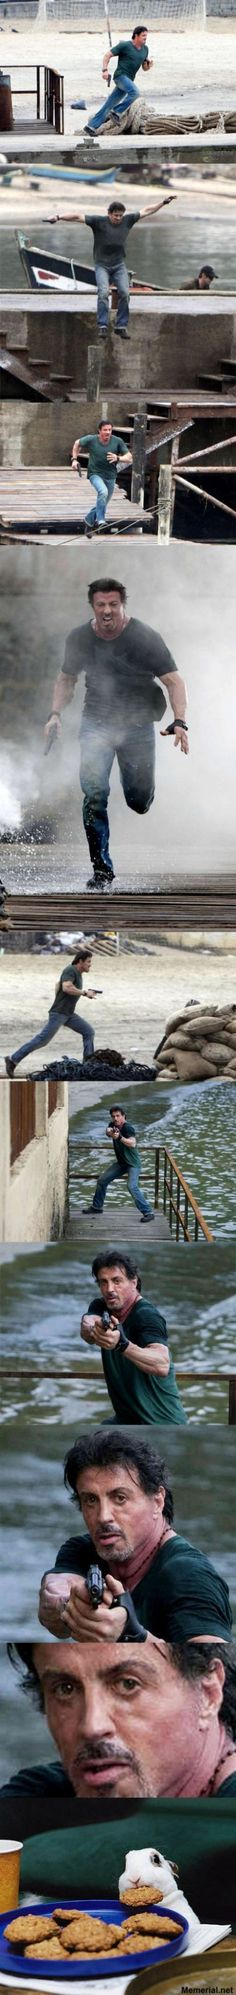 Saving The Day. Sylvester Stallone, the rabbit and cookies. Little Fun - all about humor and fun! Funny Images, Funny Photos, Funniest Pictures, Silvester Stallone, Rambo, Picture Blog, Humor Grafico, I Need To Know, Human Body